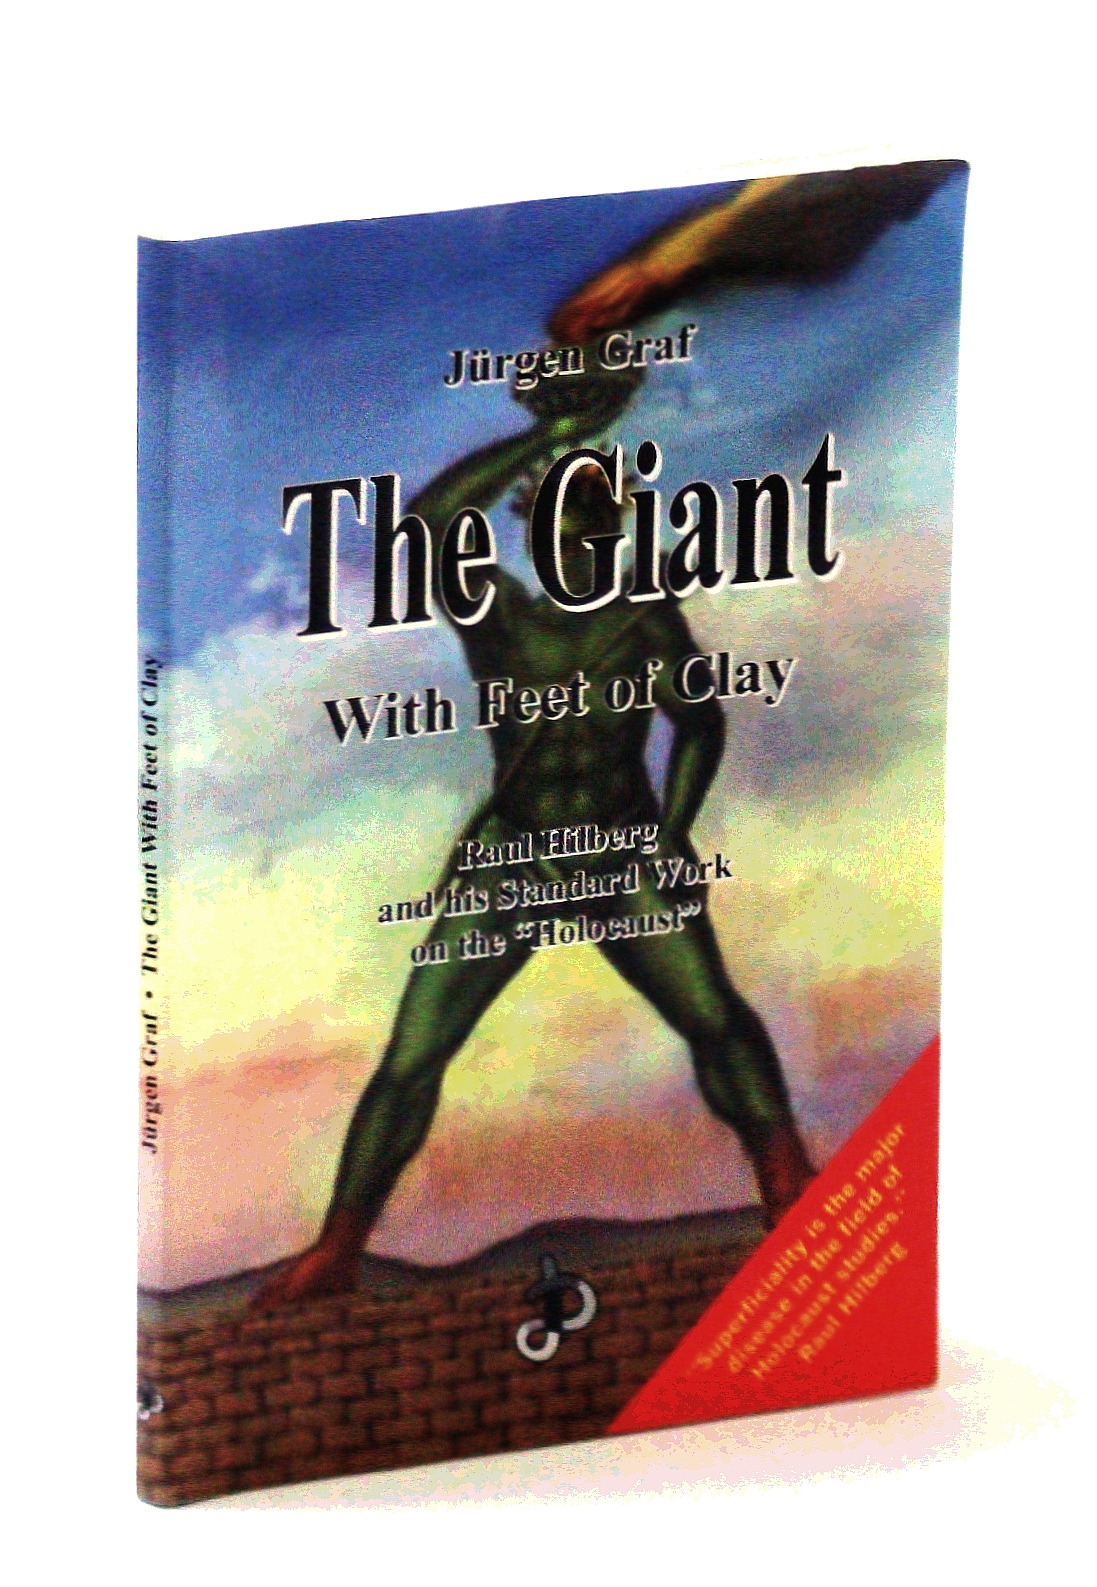 Image for The Giant With Feet of Clay